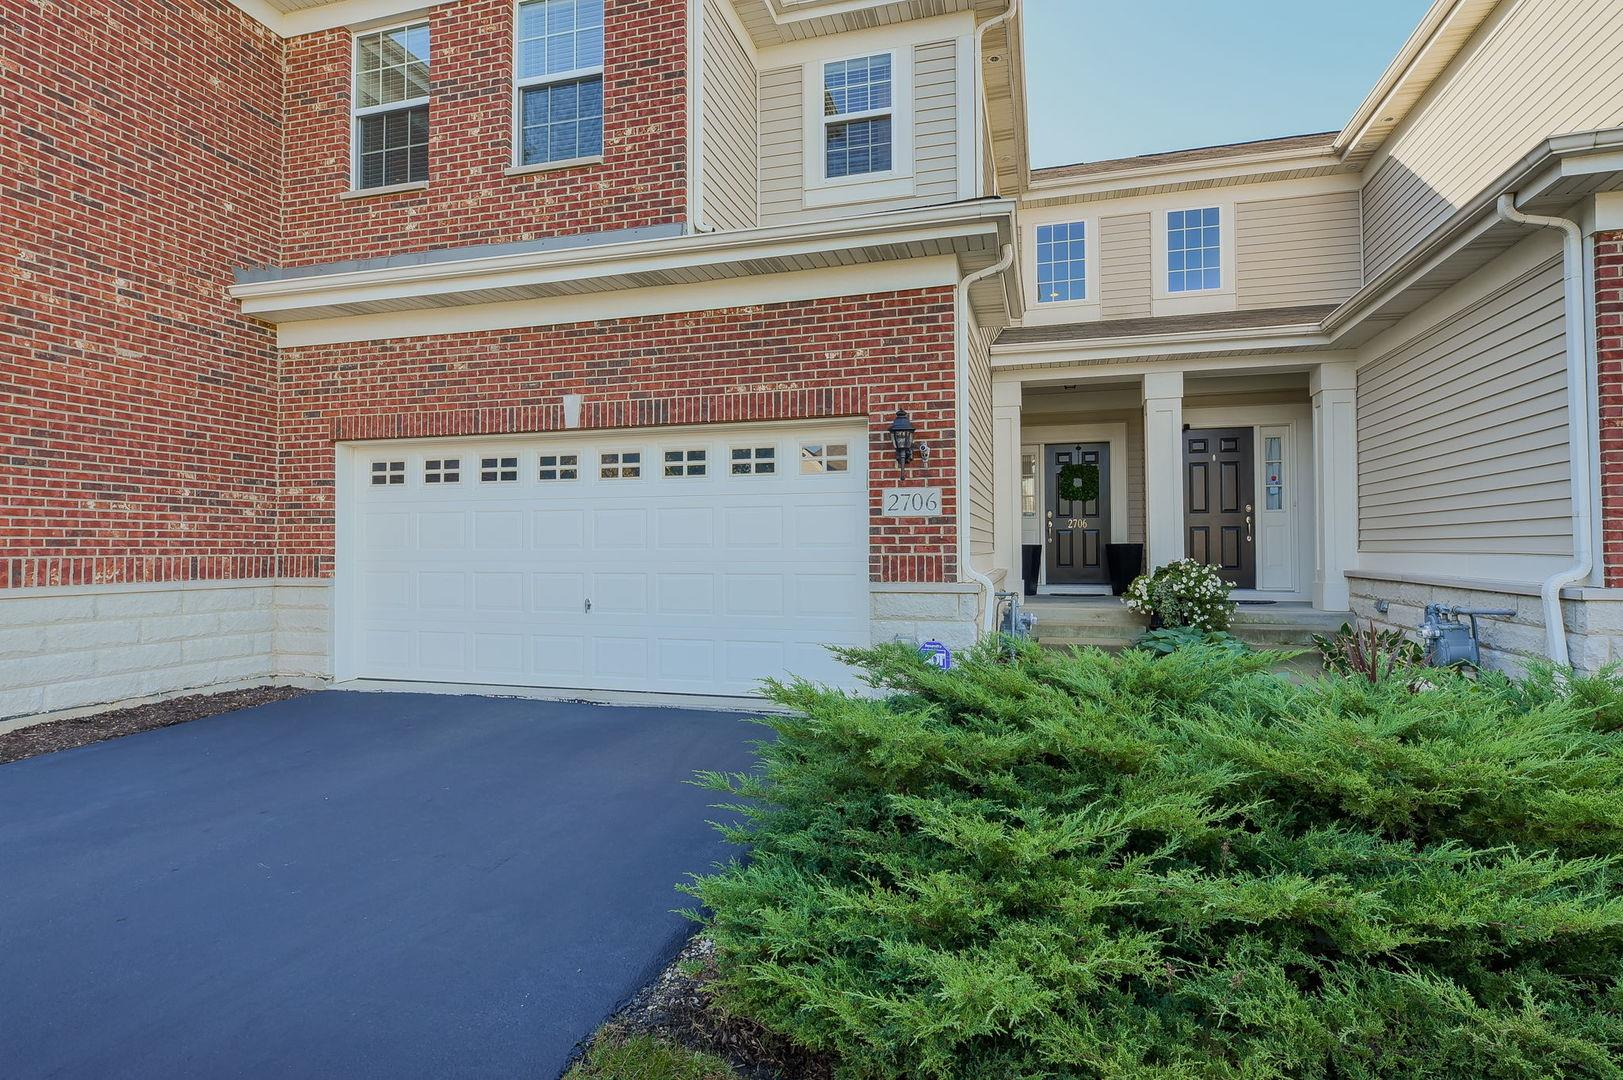 2706 Blakely Lane, Naperville, IL 60540 - #: 10897805